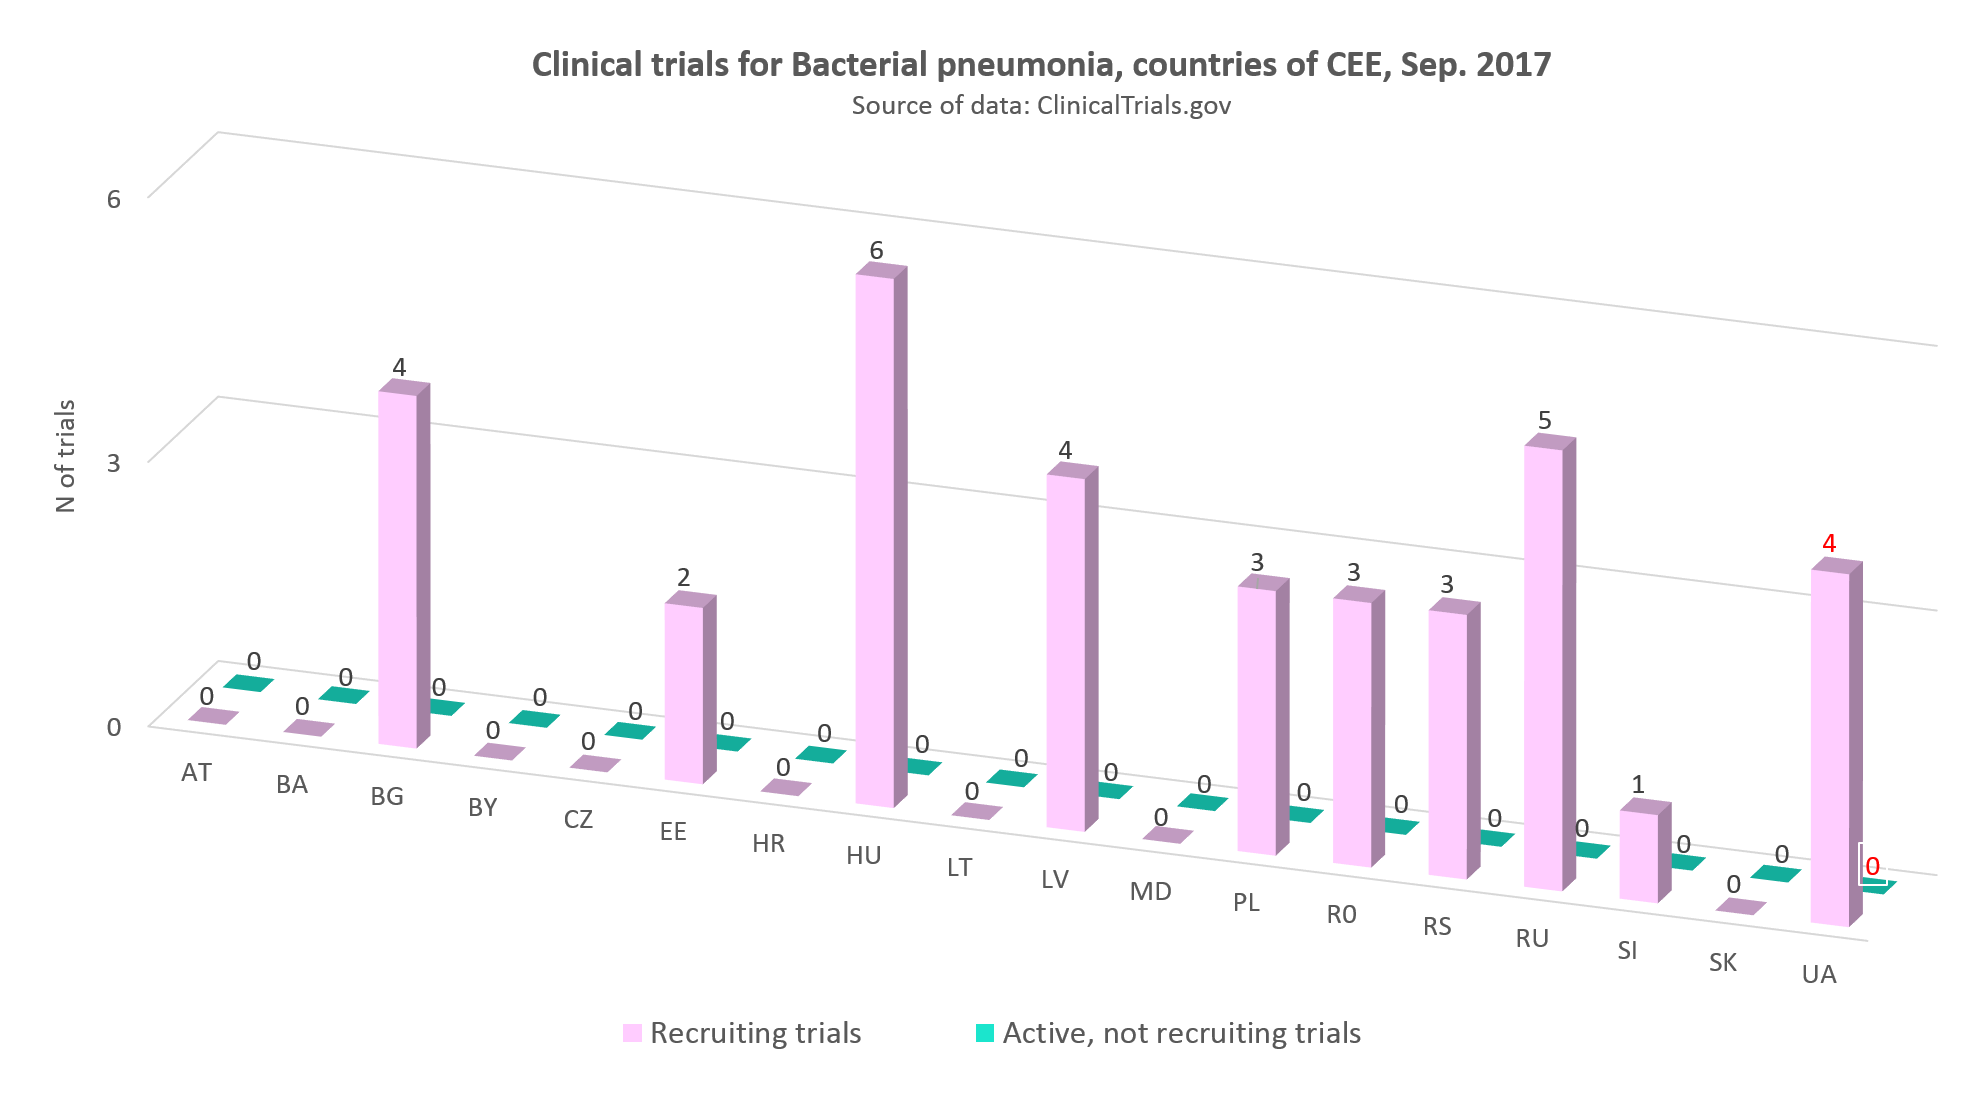 Clinical trials for bacterial pneumonia in the countries of CEE, September 2017